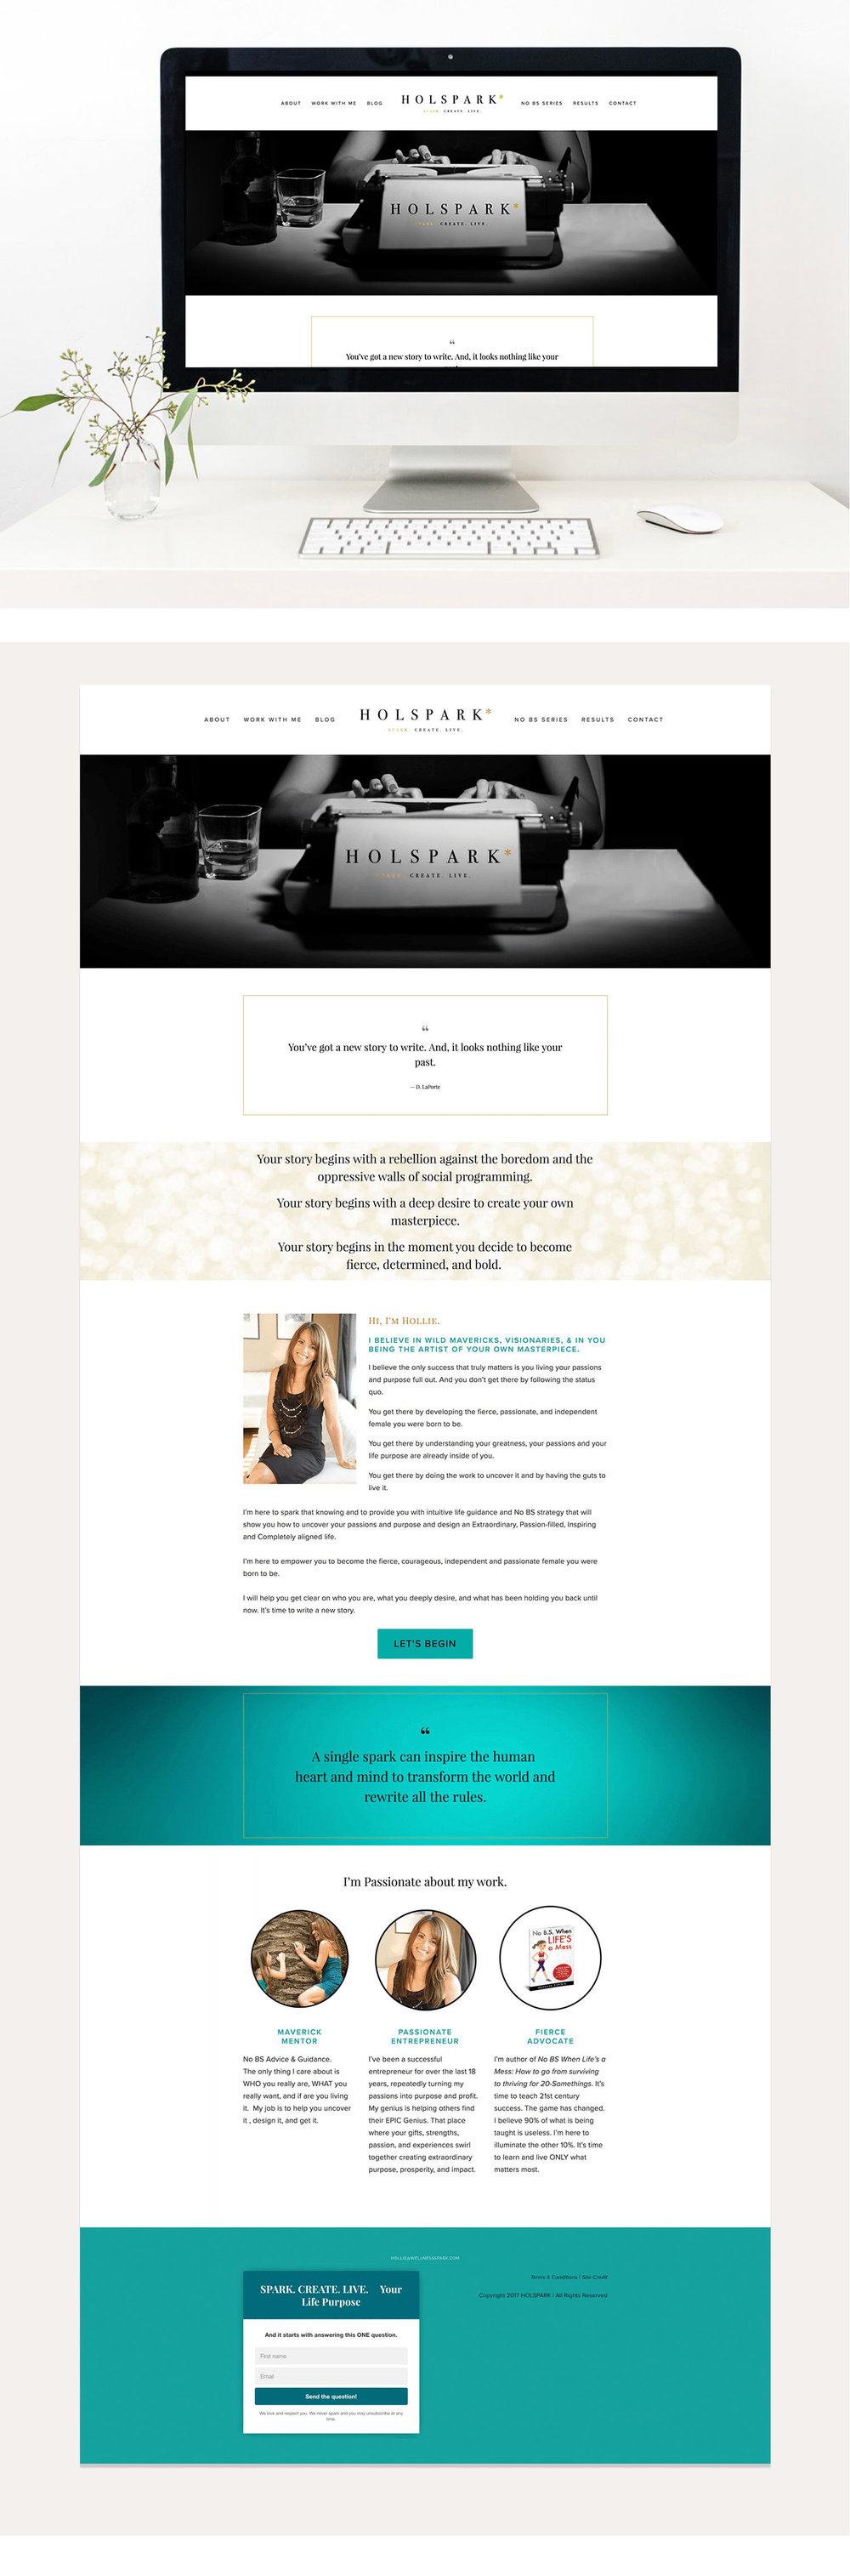 HOLSPARK web design | Squarespace web design | Jodi Neufeld Design